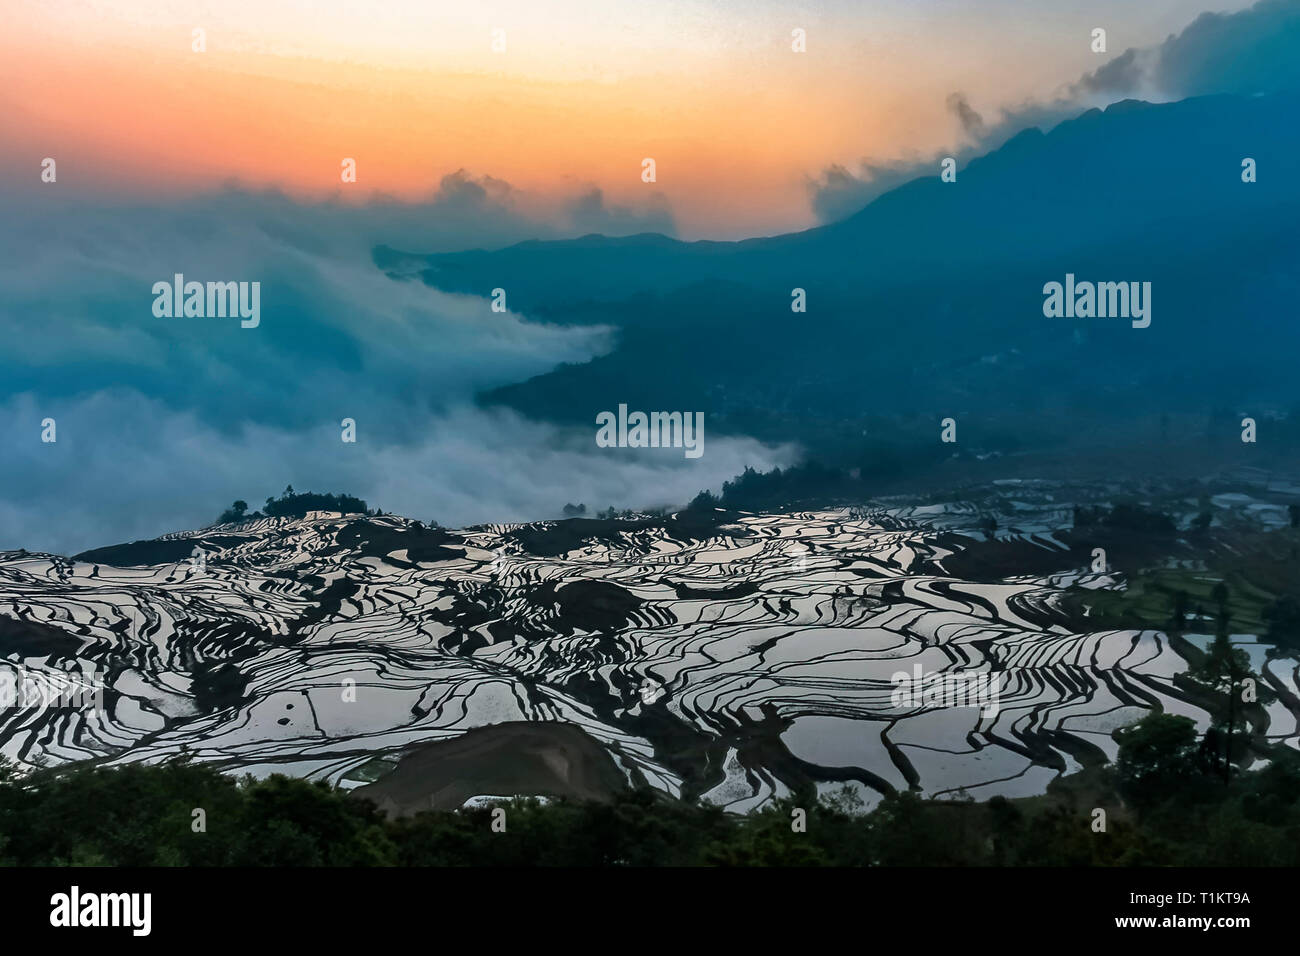 Aerial view of Yuanyang rice terraces at 1900 meters above sea level with its mystic sea of clouds at daybreak - Stock Image